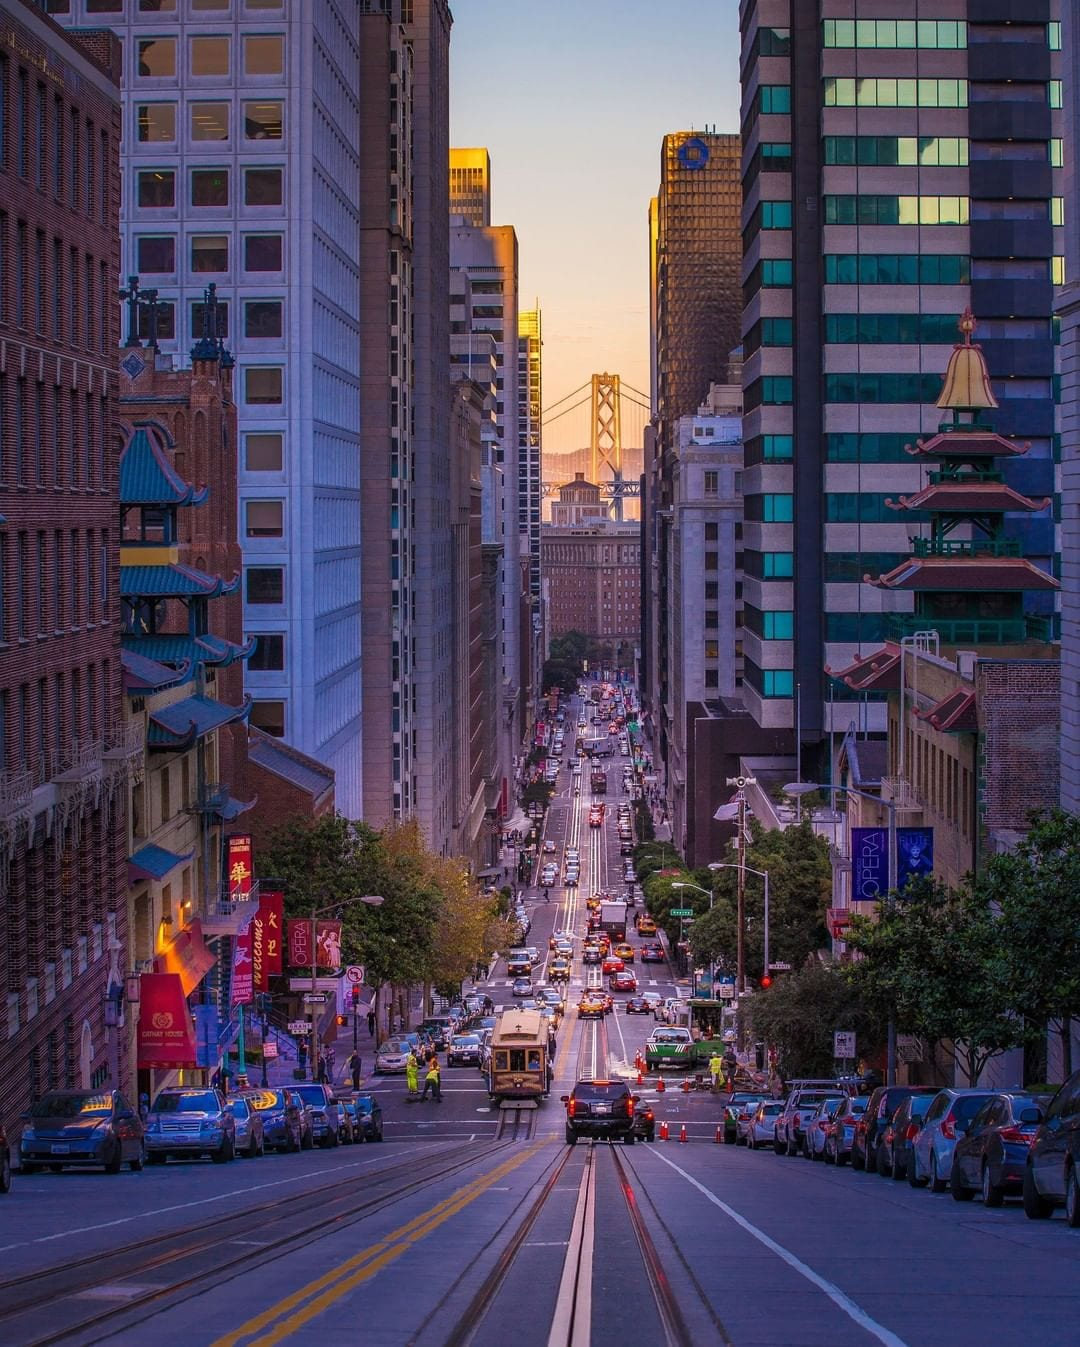 Explore San Francisco by car, if not by foot, cable car or taxi, without the worry of where to park your car when you return to the hotel. Book our Park, Play and Stay Package today and leave the parking to us! https://bit.ly/33j1sCZ #hotelzephyrsf #visitsf #holidayvacation